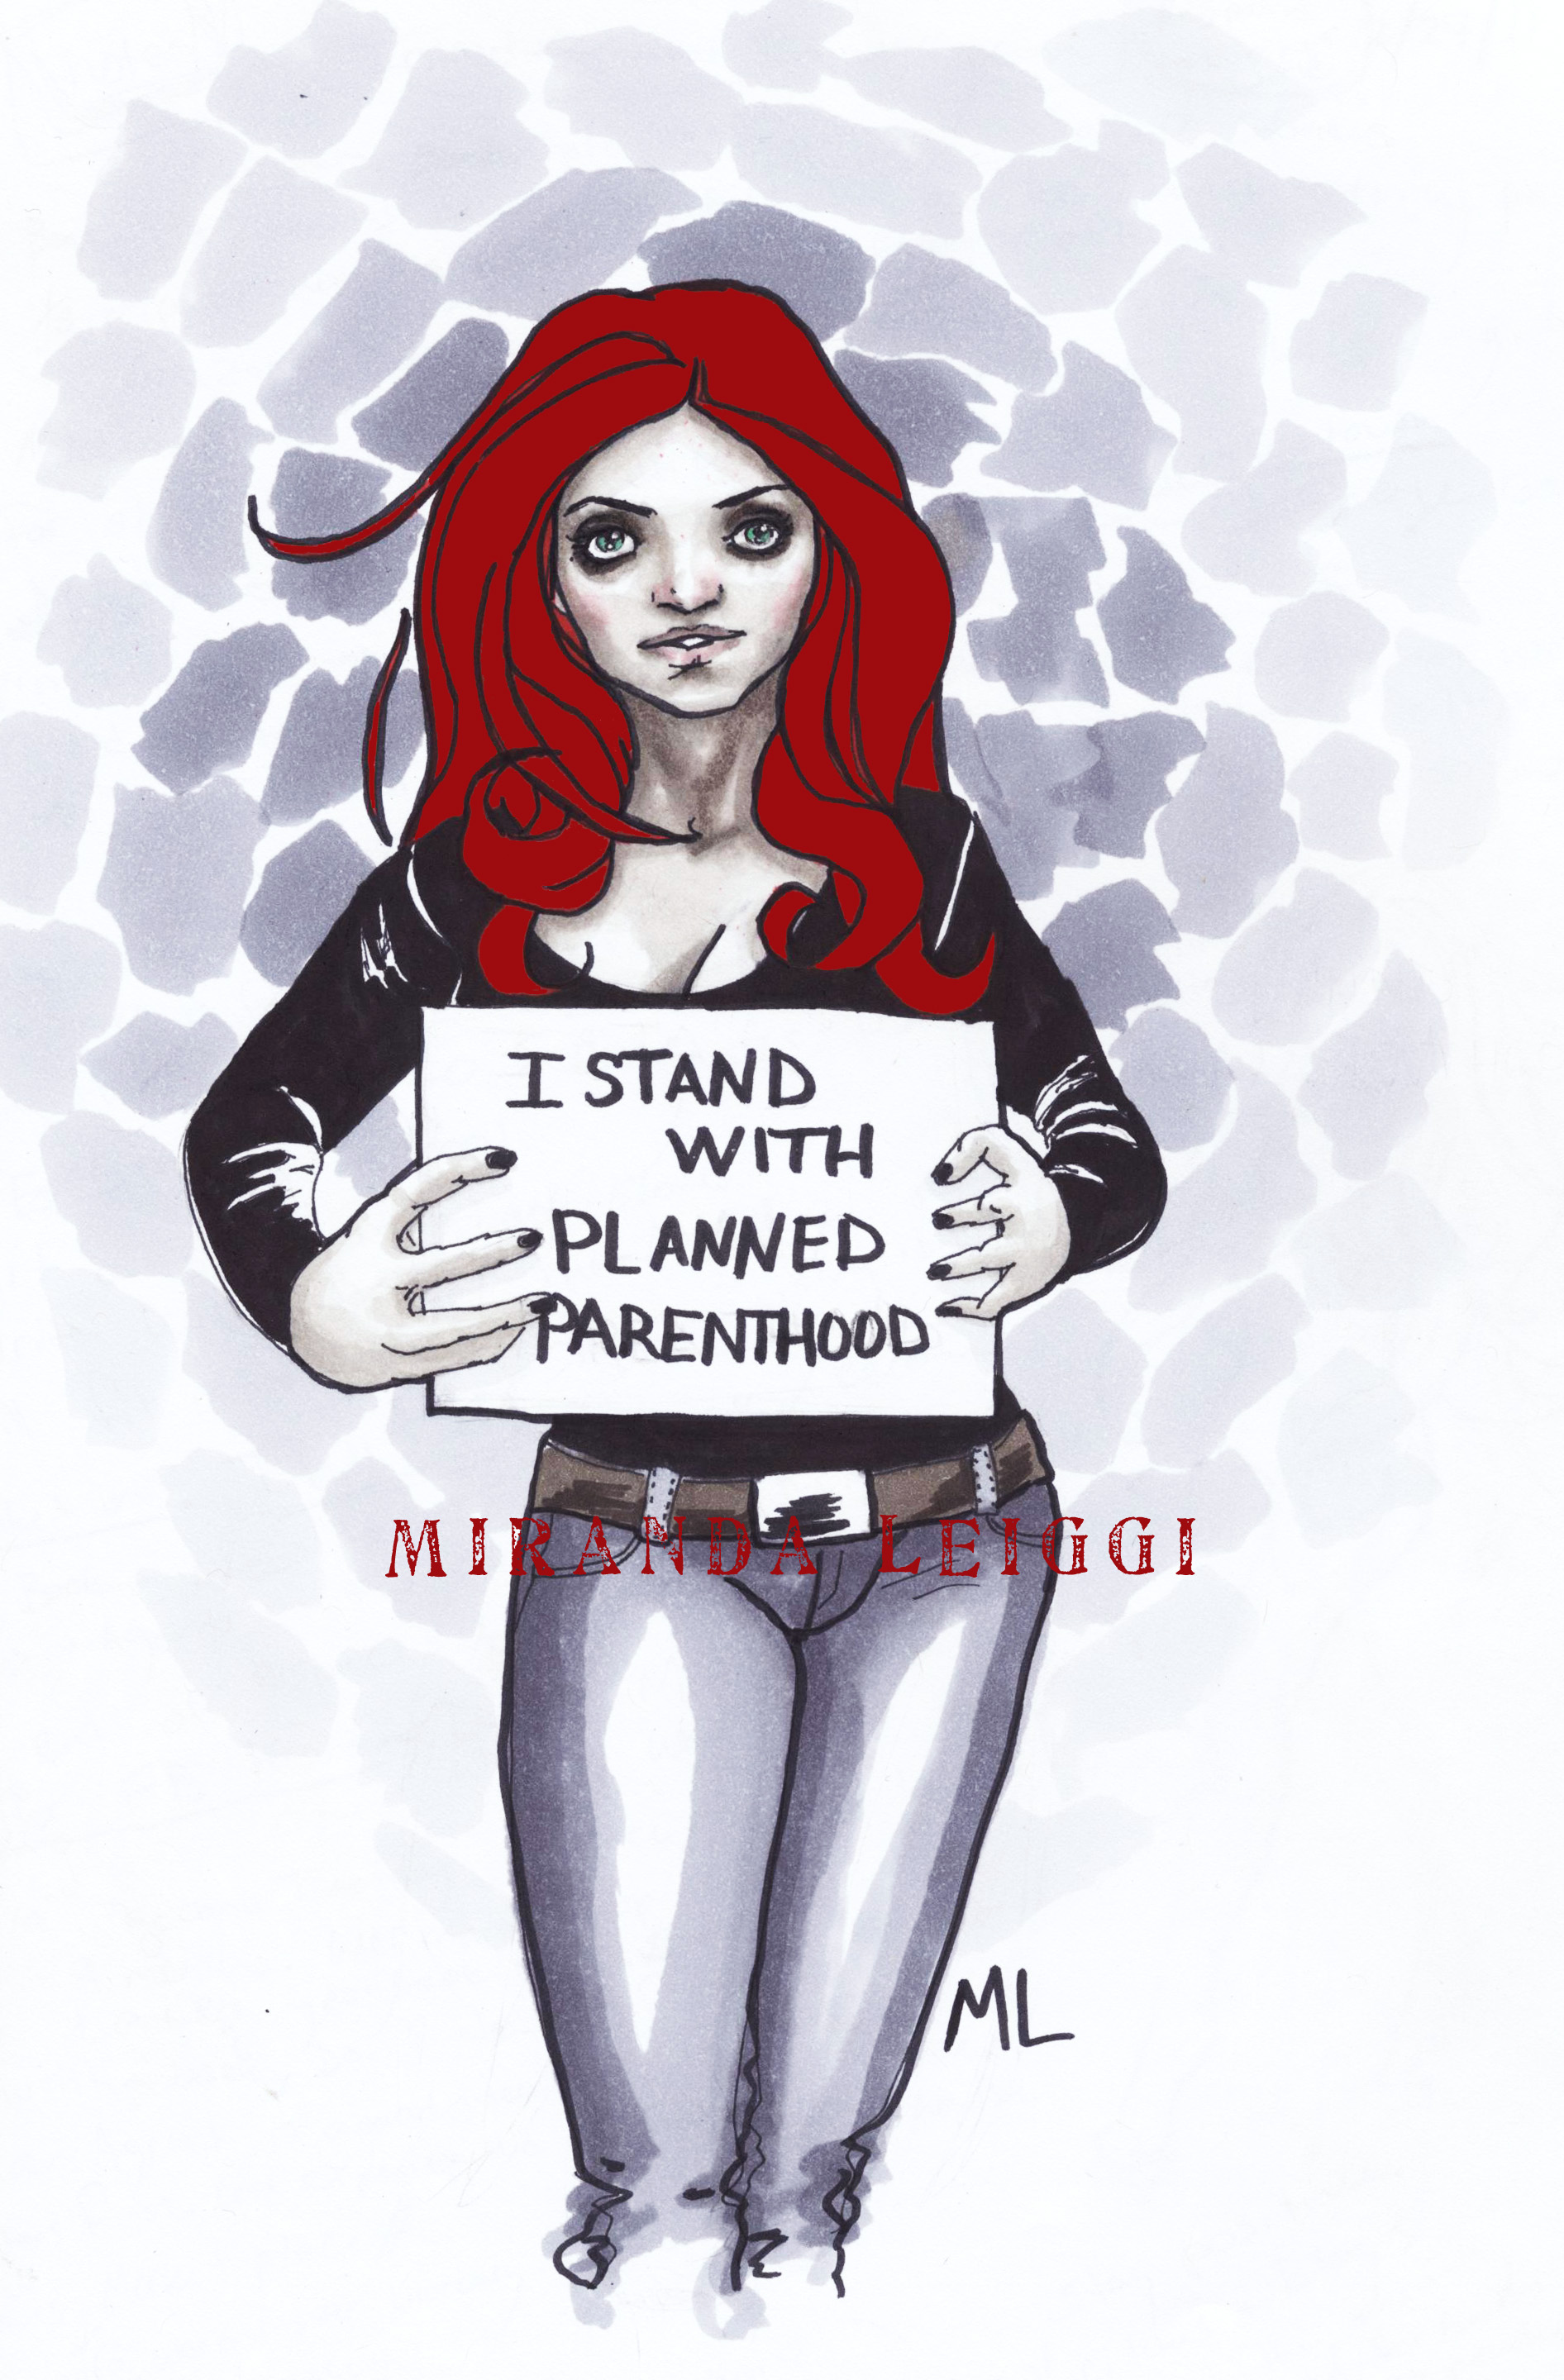 copic marker drawing, woman, red hair, political sign